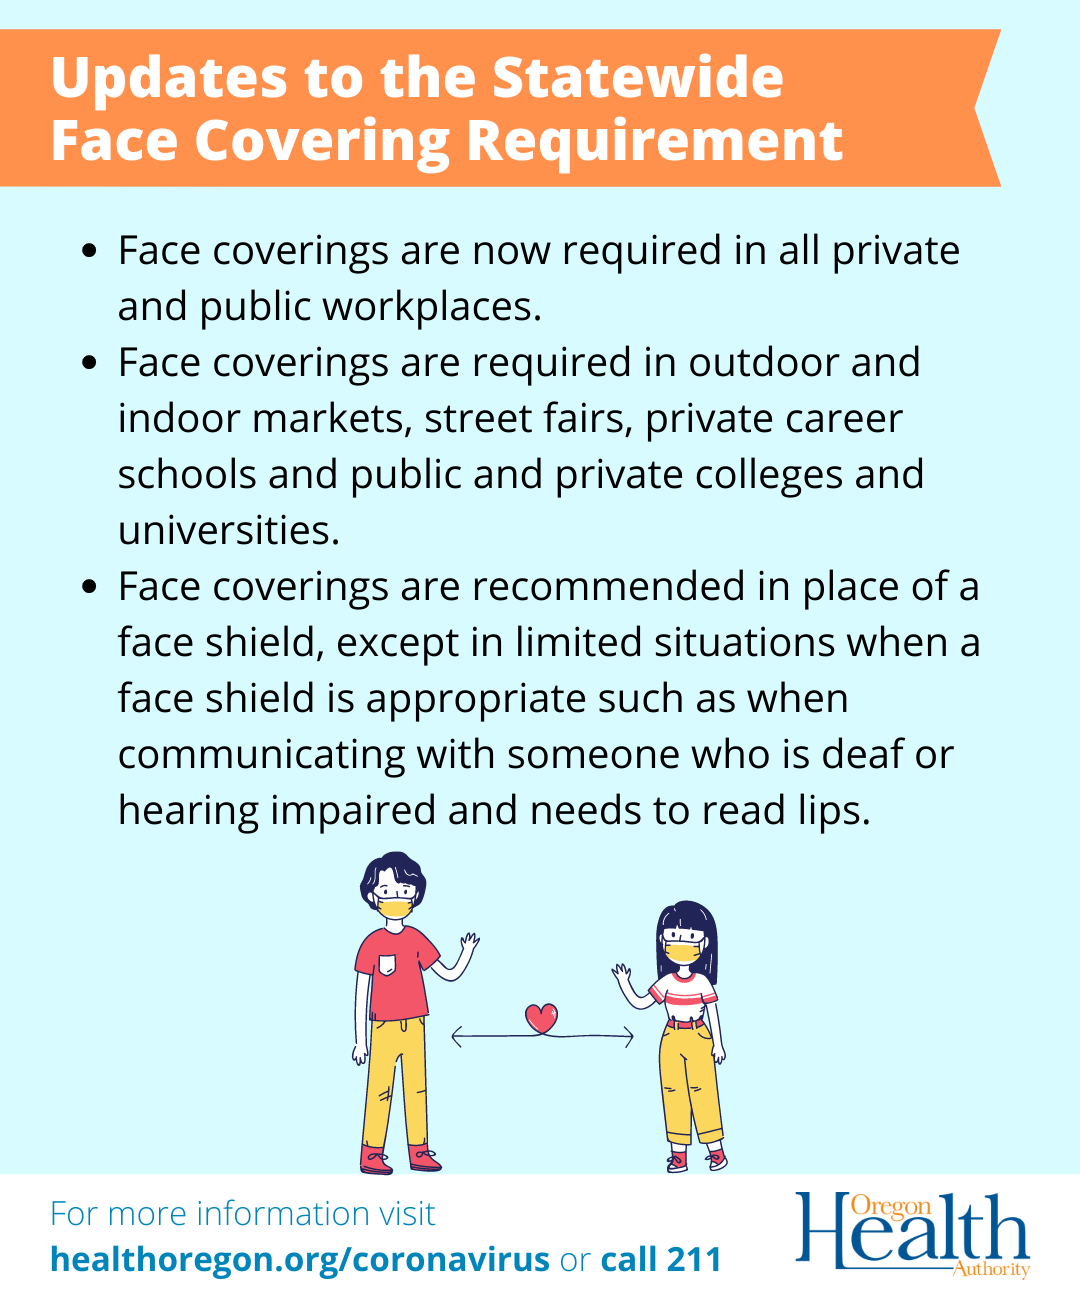 Updates to the Statewide Face Covering Requirement